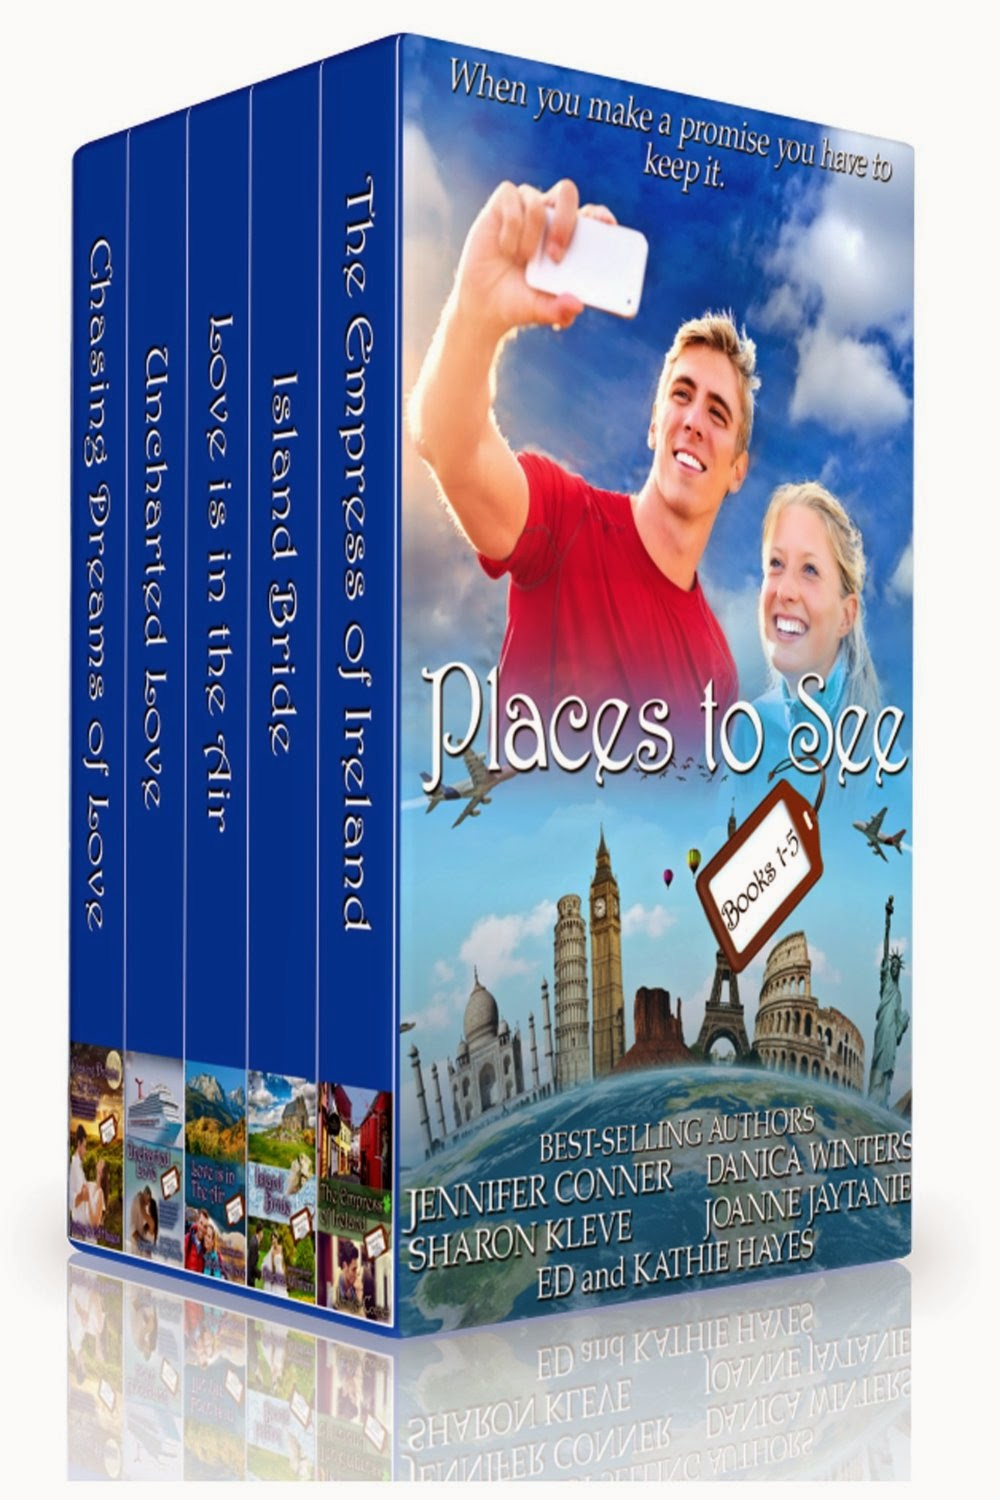 http://www.amazon.com/Places-See-Collection-Stories-1-5-ebook/dp/B00NQE3QX0/ref=sr_1_24?s=books&ie=UTF8&qid=1421614391&sr=1-24&keywords=sharon+kleve